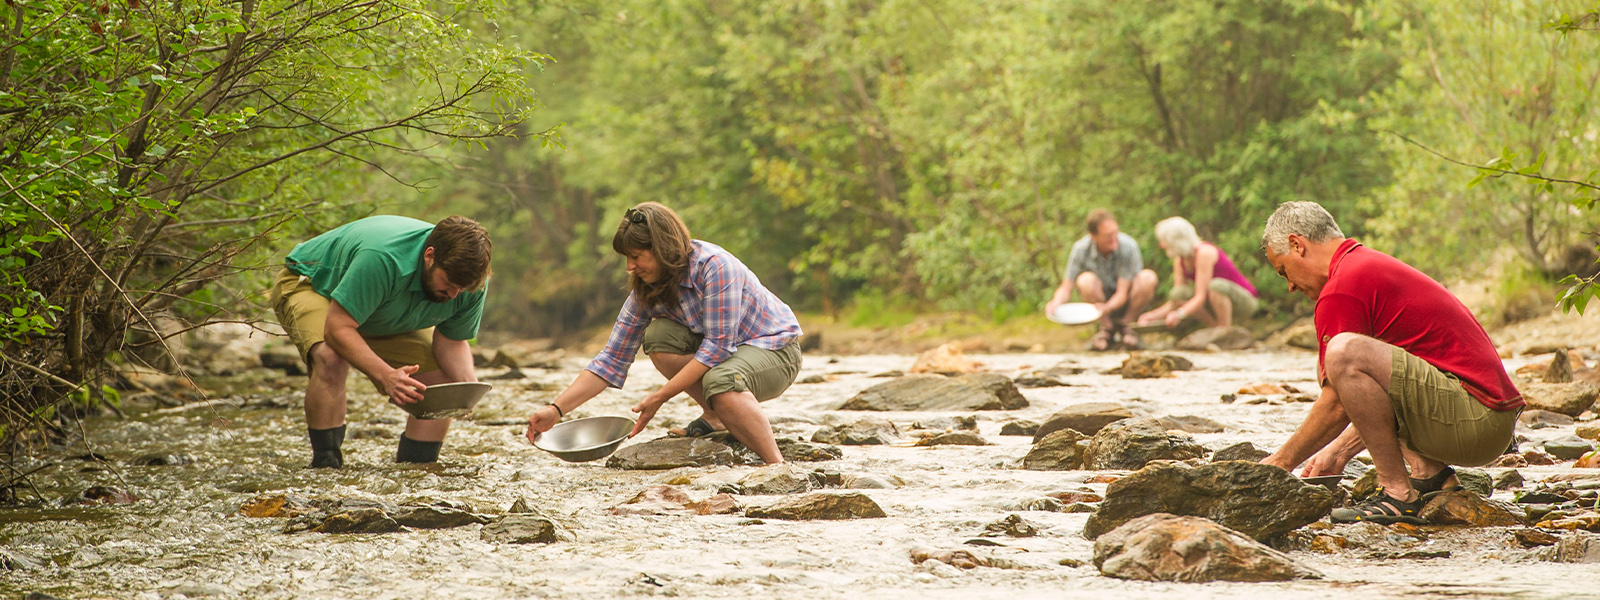 Panning for gold at Free Claim #6